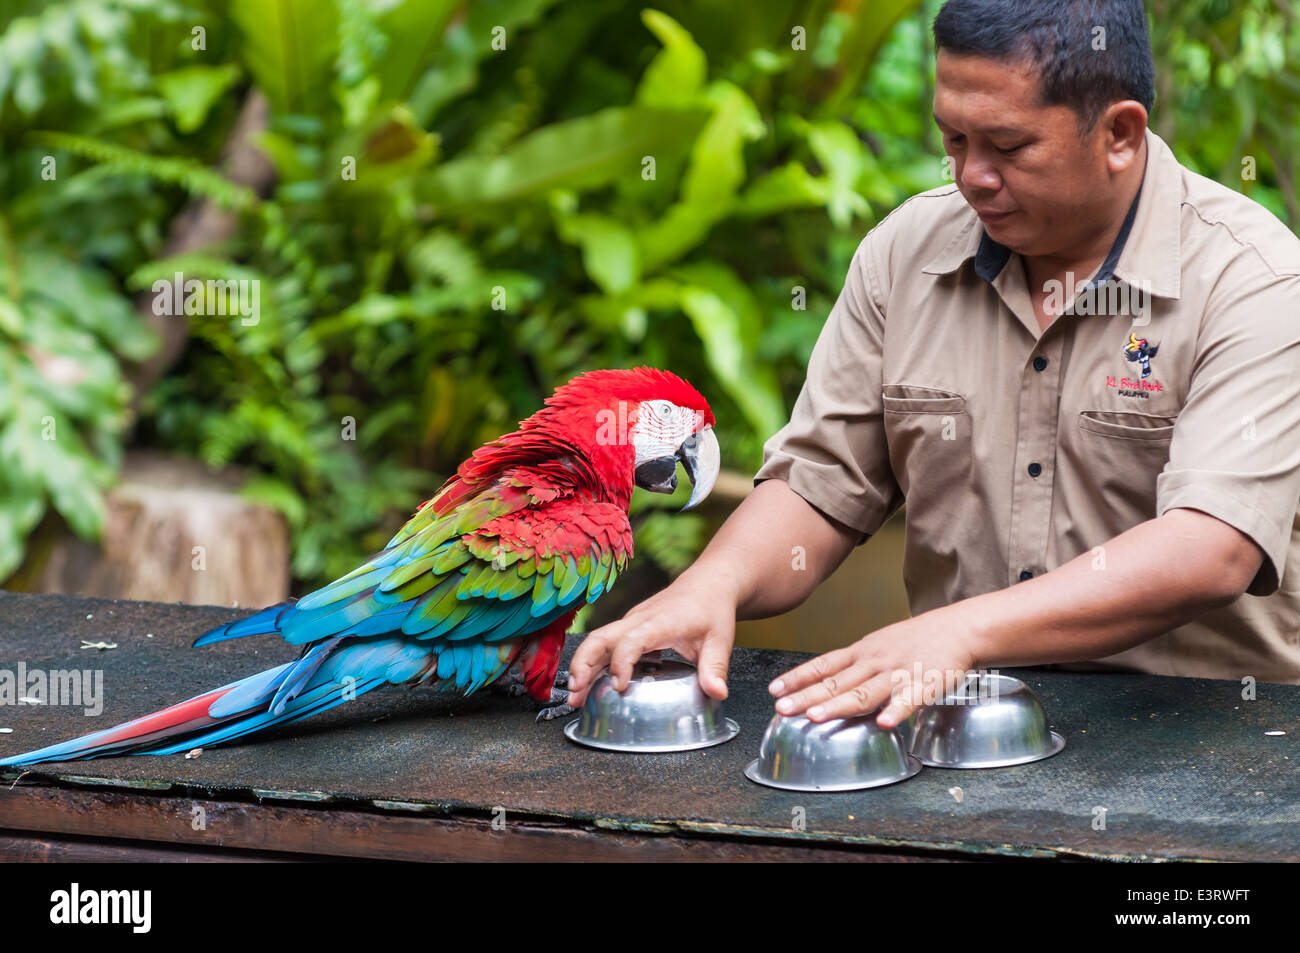 A scarlet macaw plays a cup game with a bird trainer at the KL Bird Park in Kuala Lumpur, Malaysia. - Stock Image